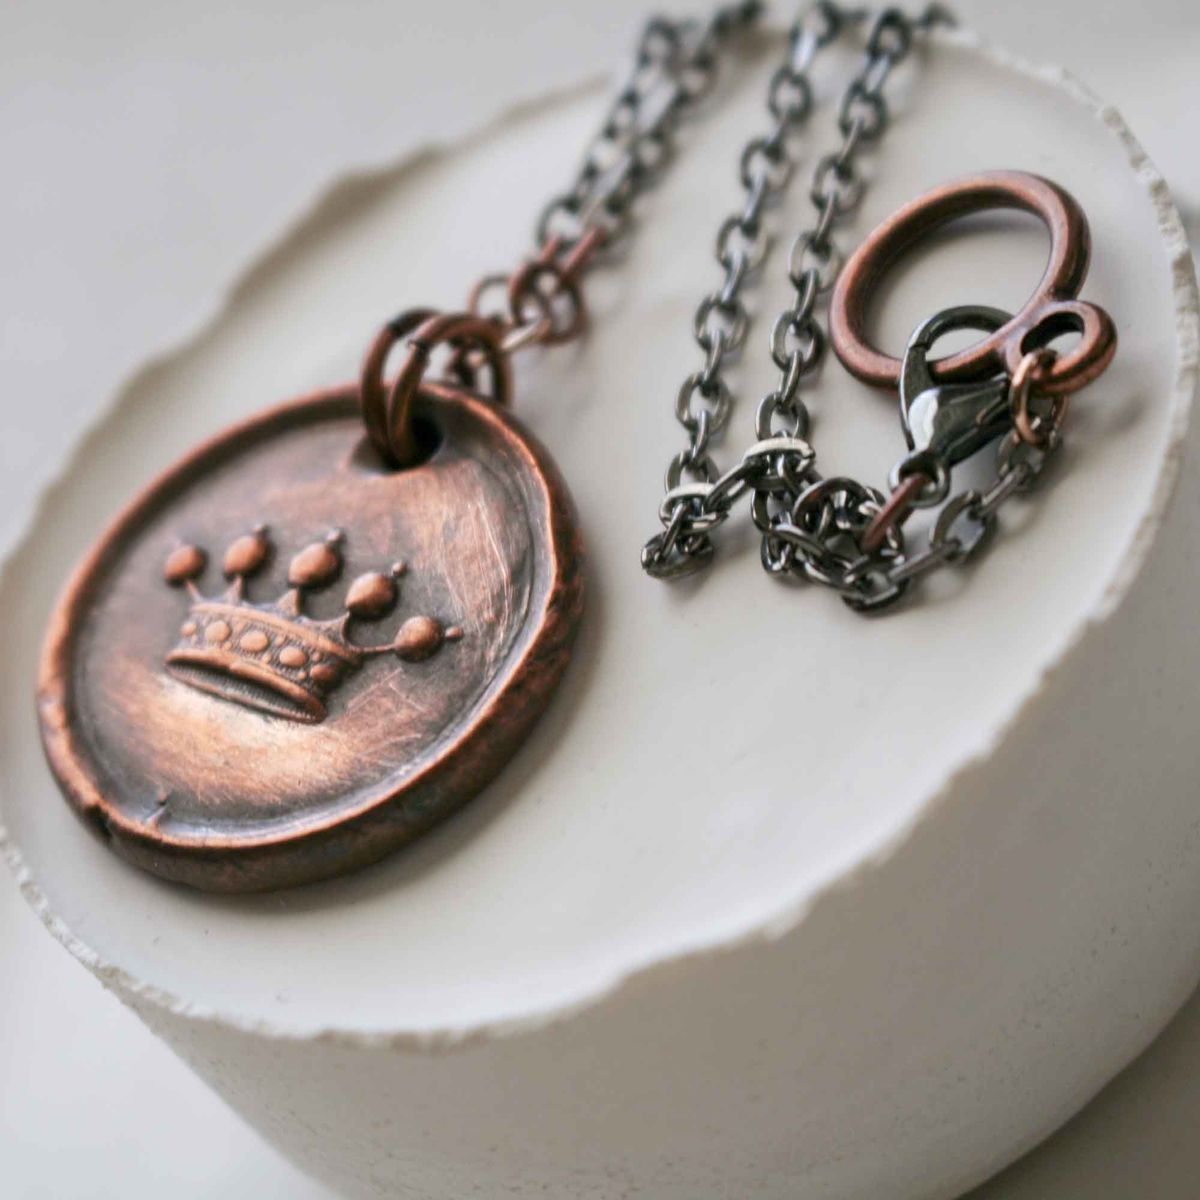 Antique Heraldic Crown of Nobility Vintage Wax Seal Charm Wax Seal Pendant Necklace - product images  of